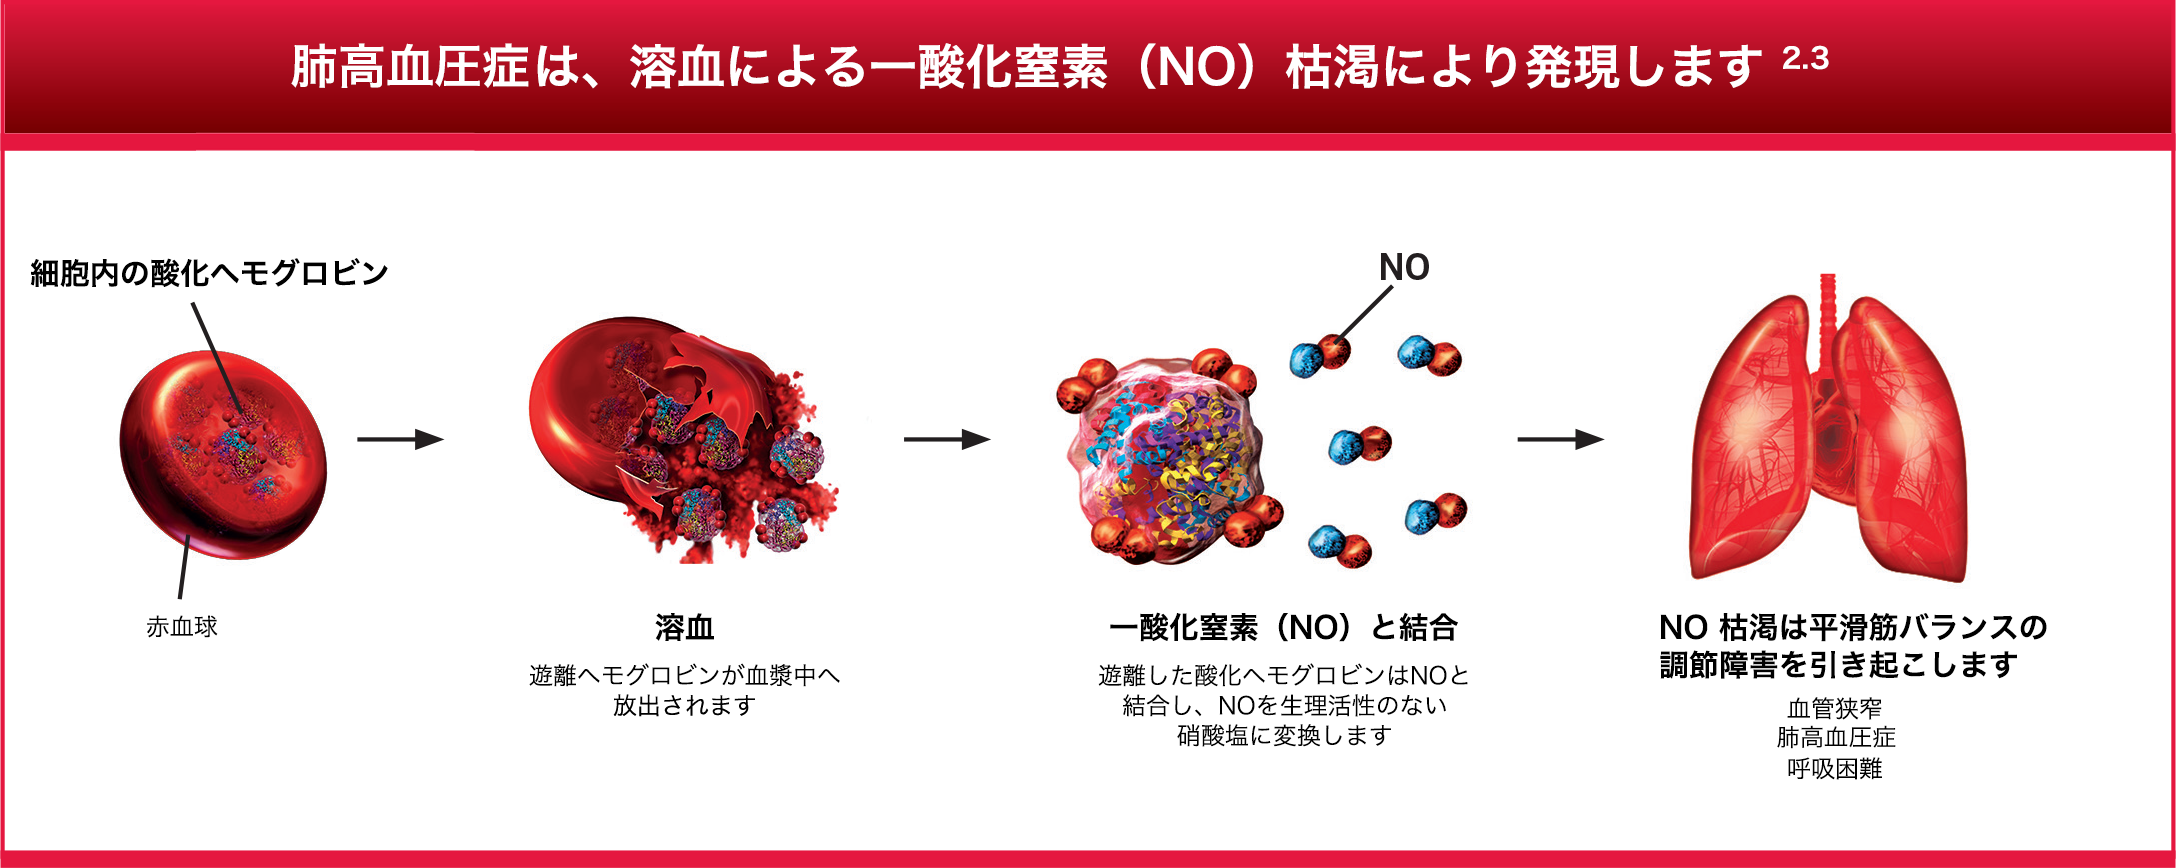 PHTN is an end result of hemolysis-induced nitric oxide (NO) depletion3,4